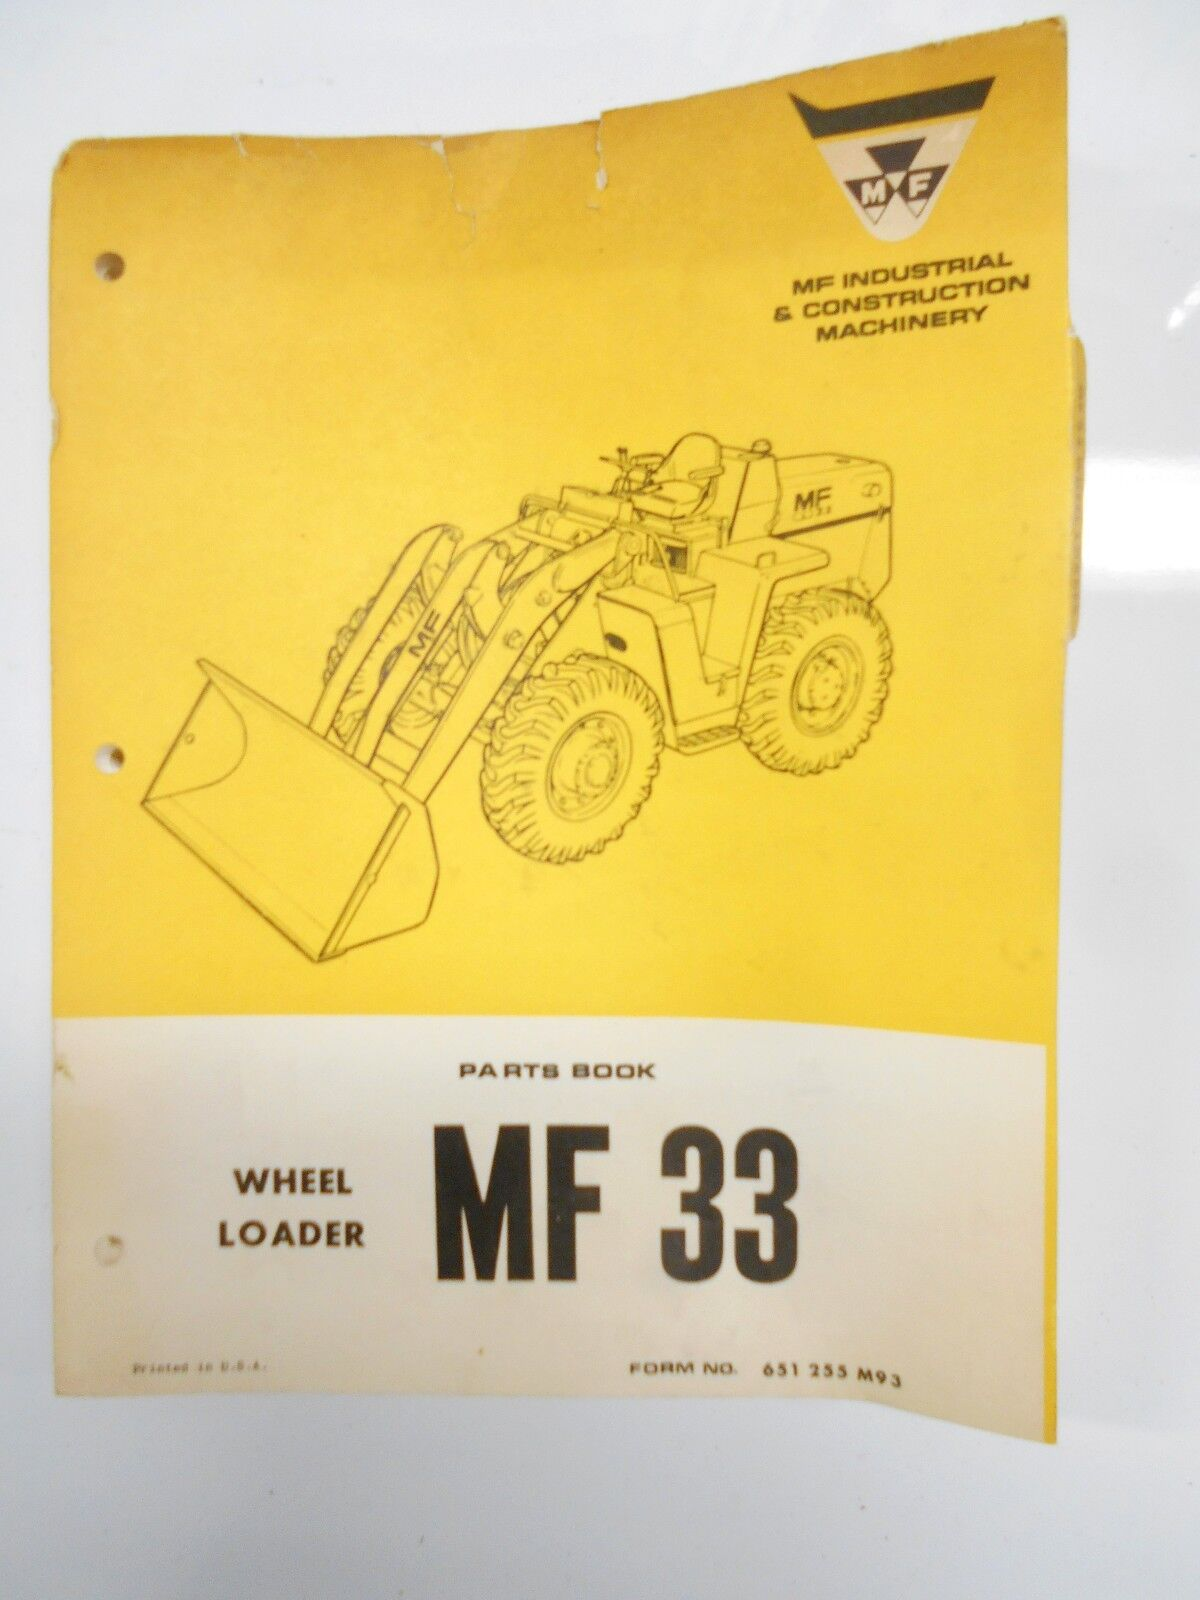 Massey Ferguson Parts Book Manual Mf 30 Wheel Loader Tractor 1970 1 of  1Only 1 available ...